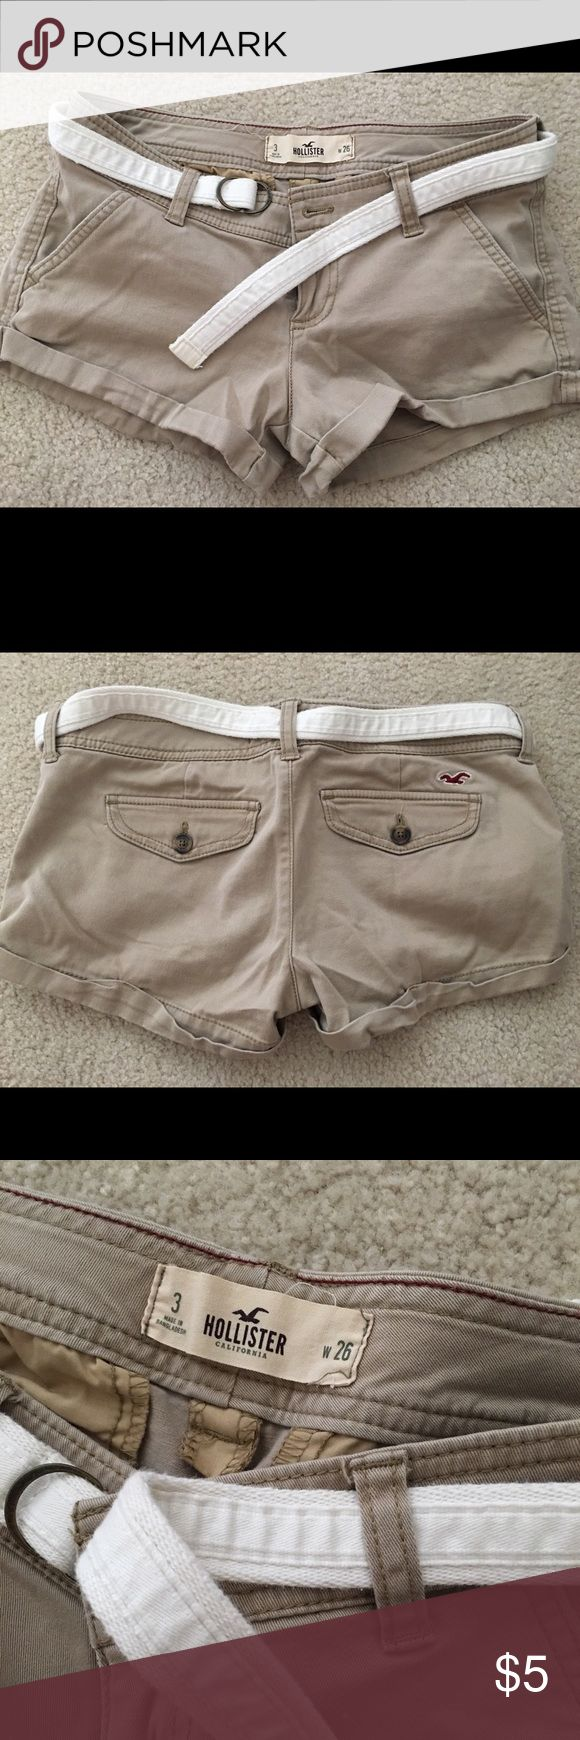 "Hollister Women Shorts Good condition. I am 5'7"" tall, it fitted well when I was 135 lbs😉 Hollister Shorts"